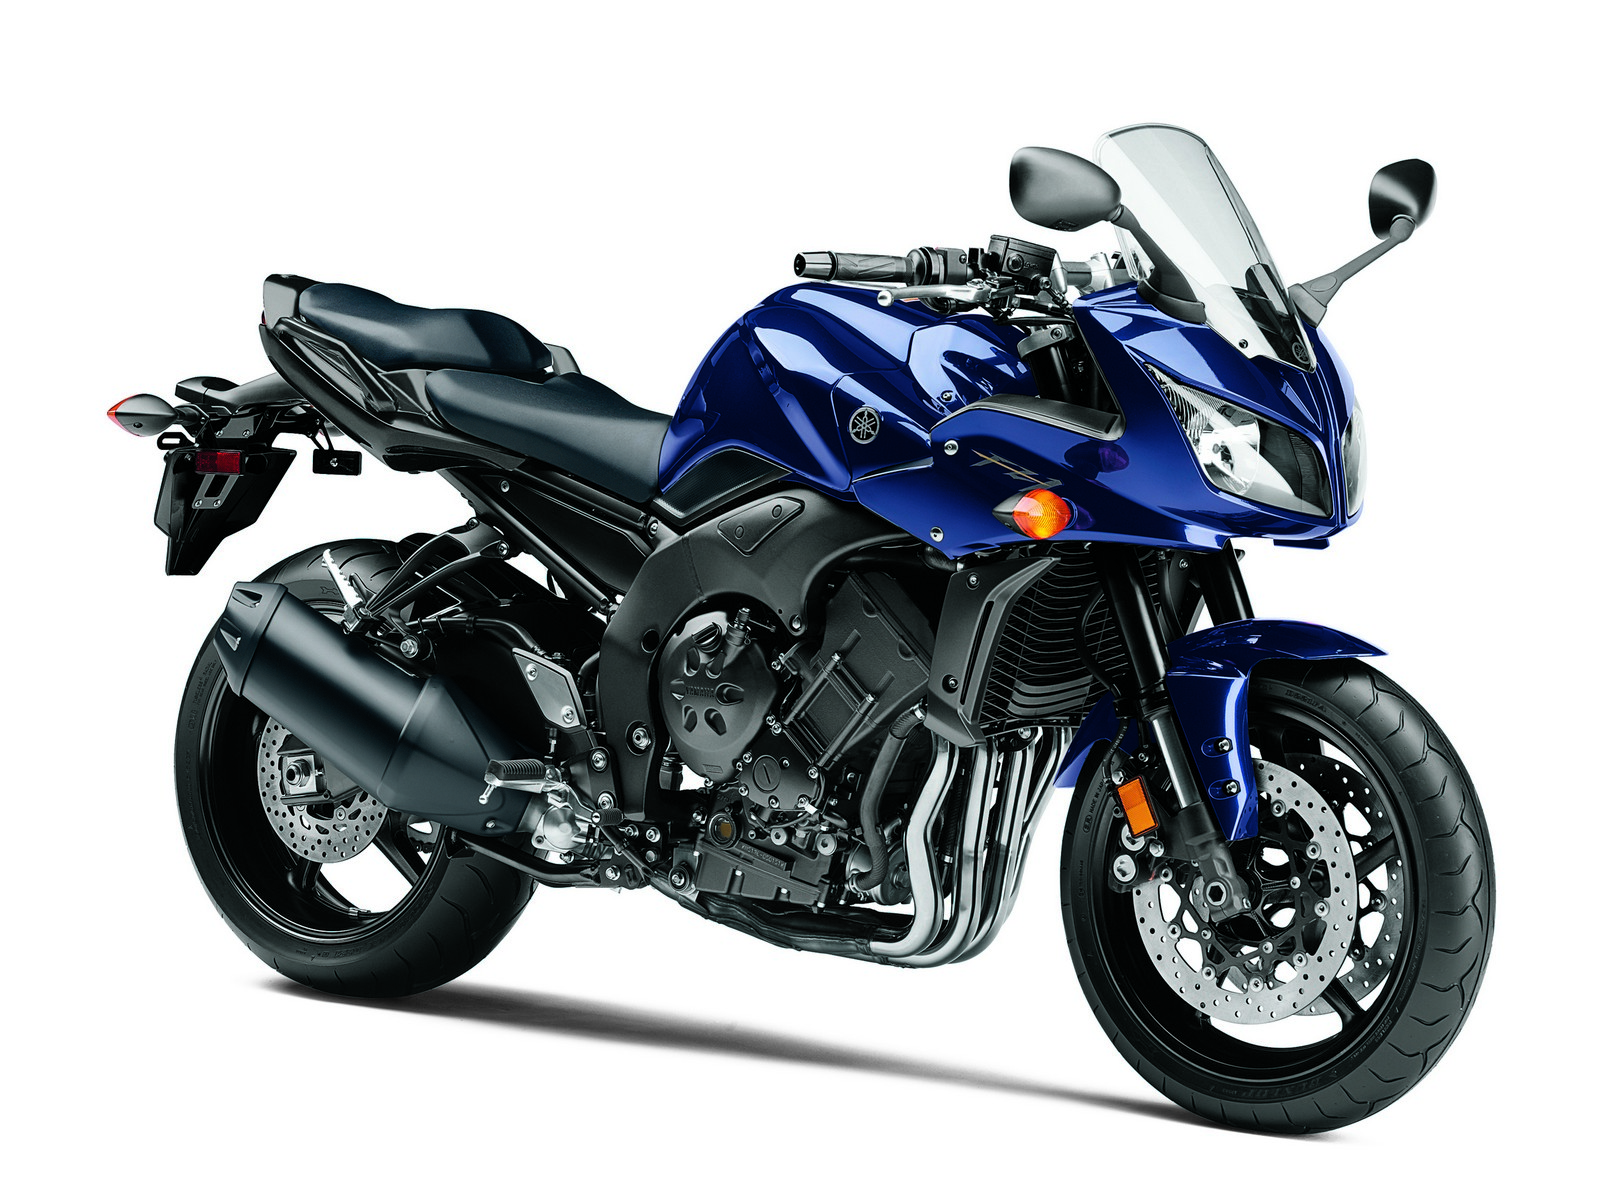 2013 Yamaha FZ1 | Top Speed